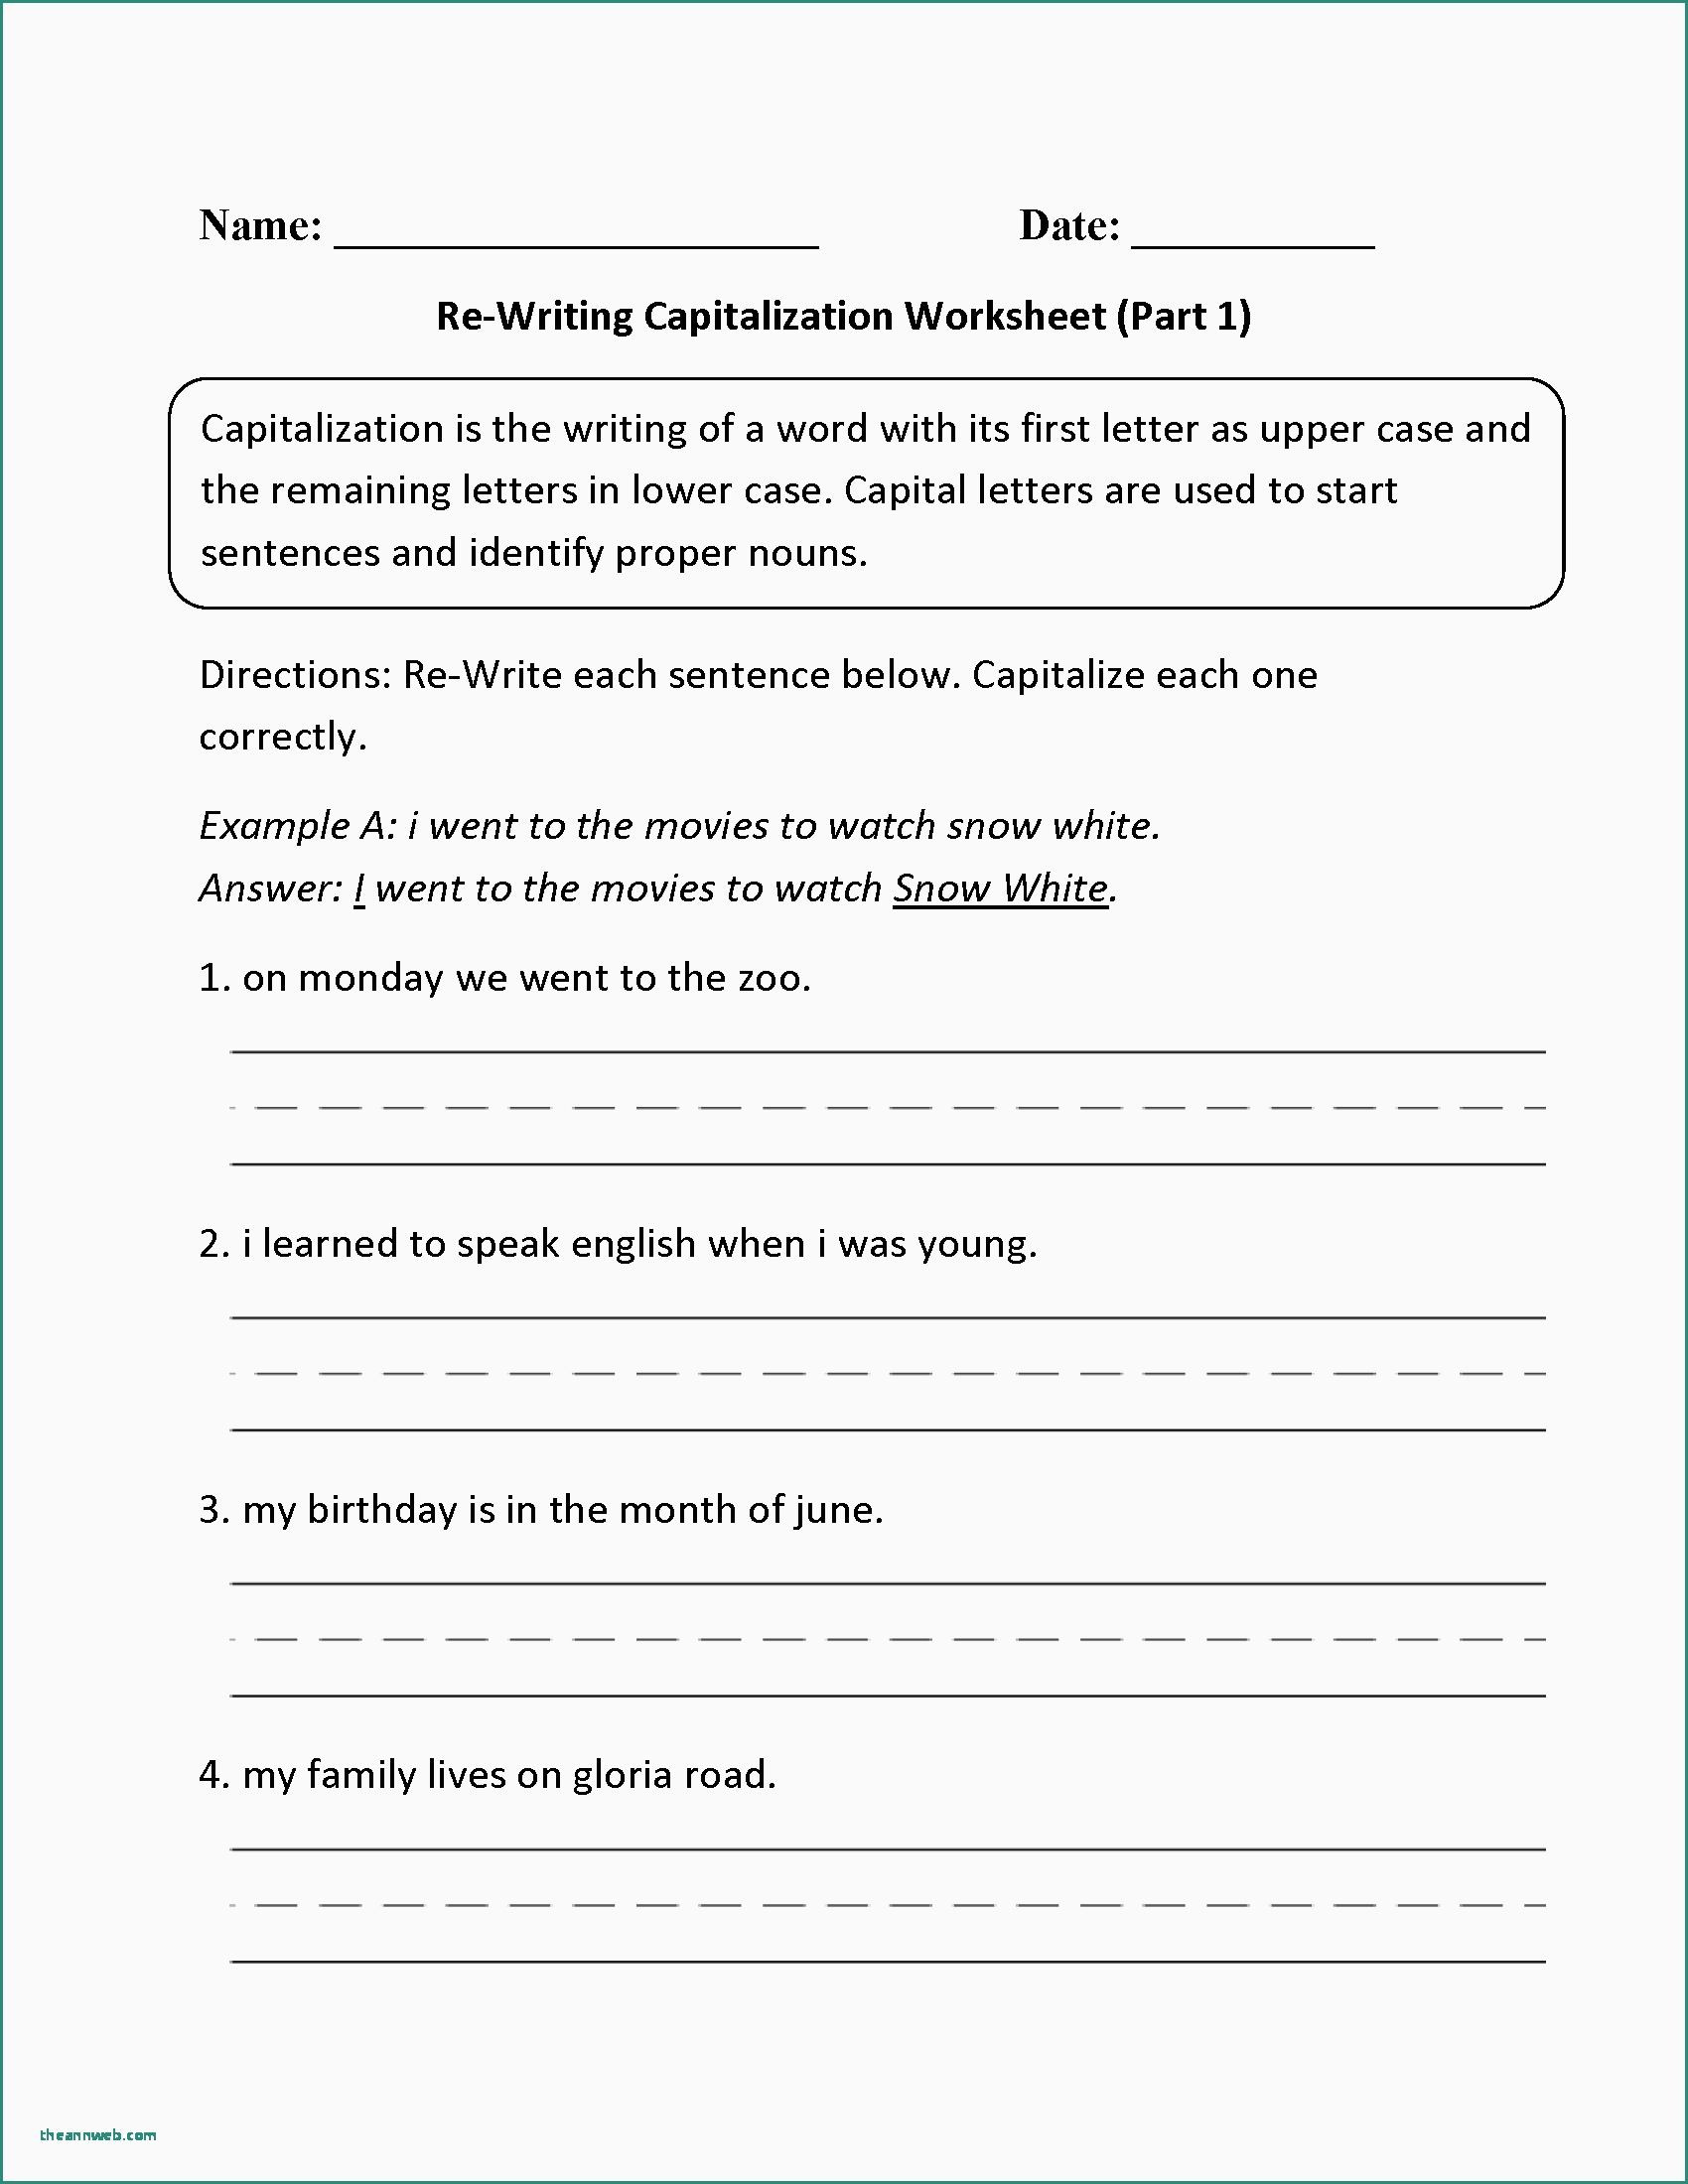 4th Grade Paragraph Writing Worksheets Free Printable Number Tracing and Writing 1 10 Worksheets